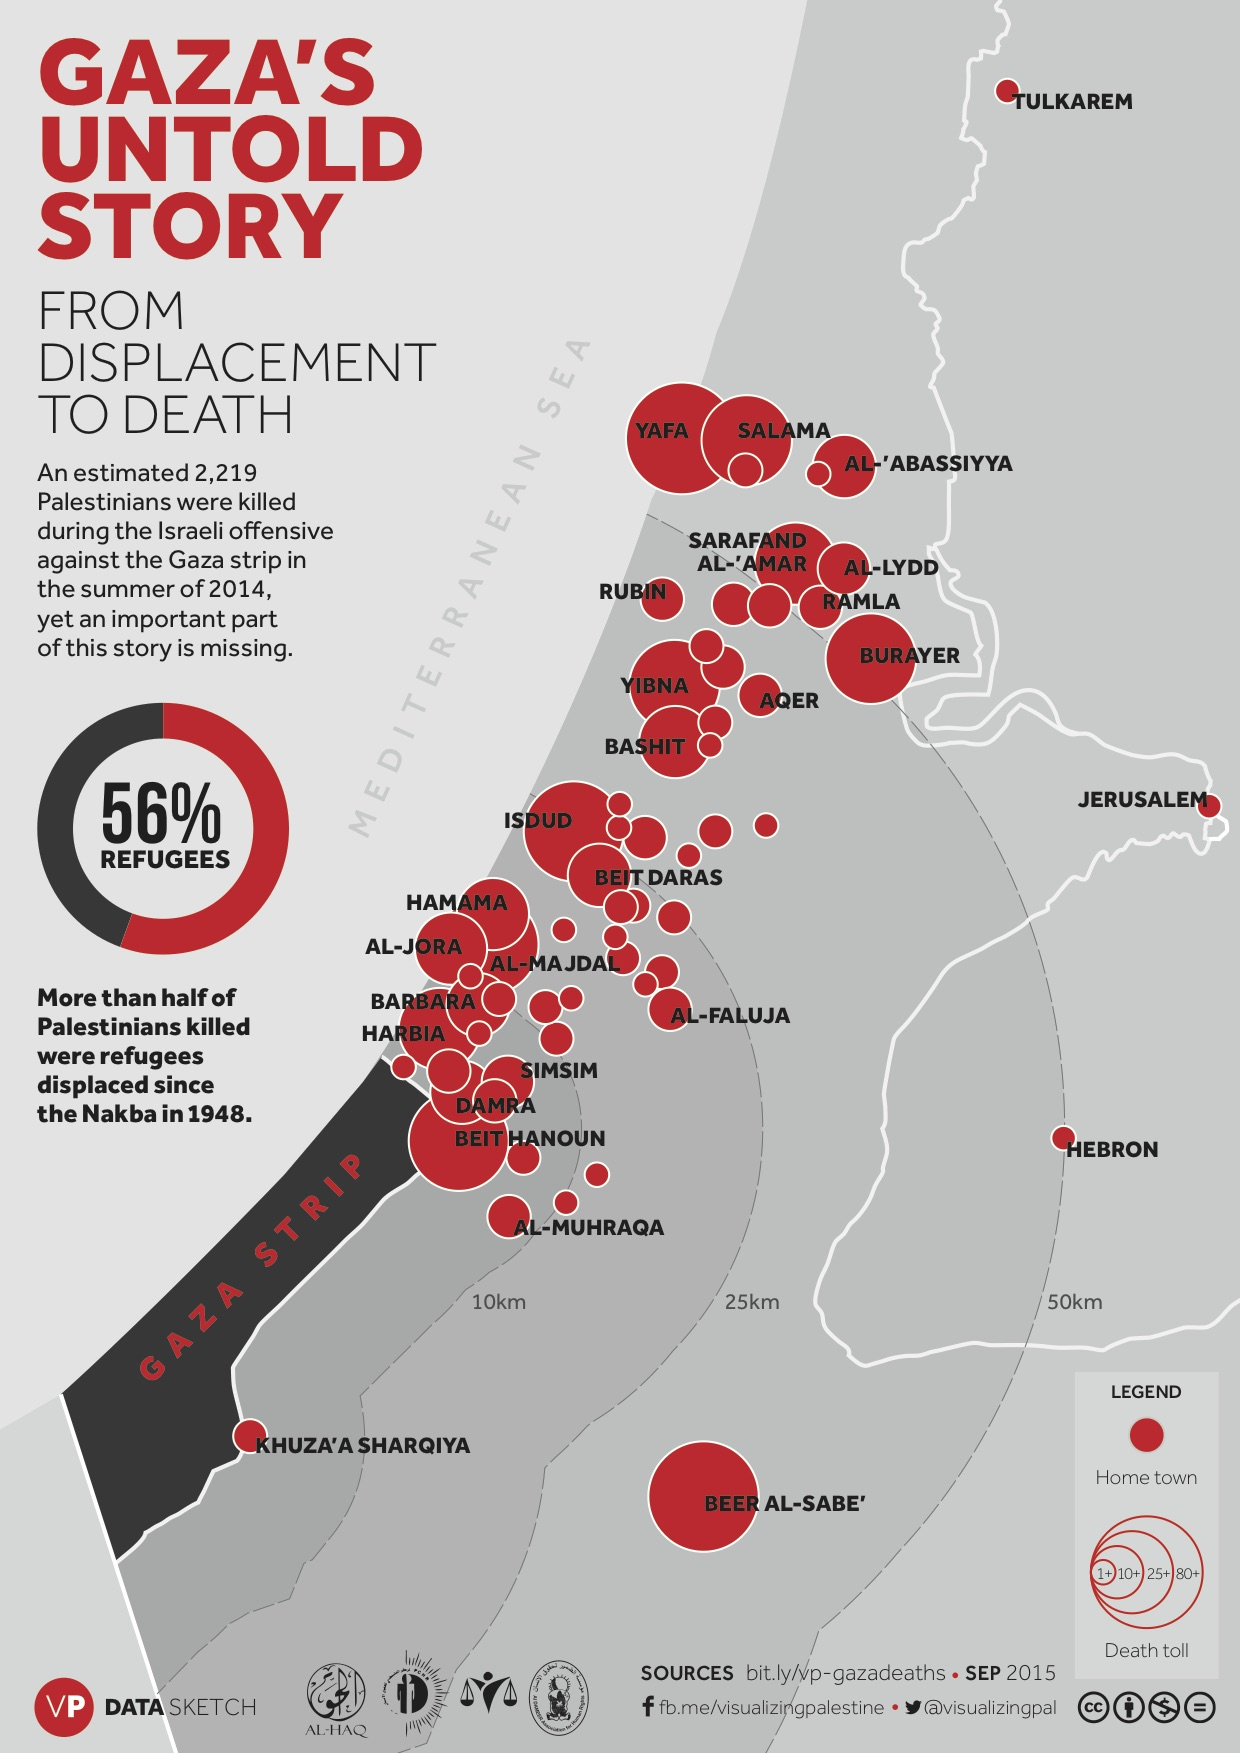 gaza geographical imaginations continuing catastrophes